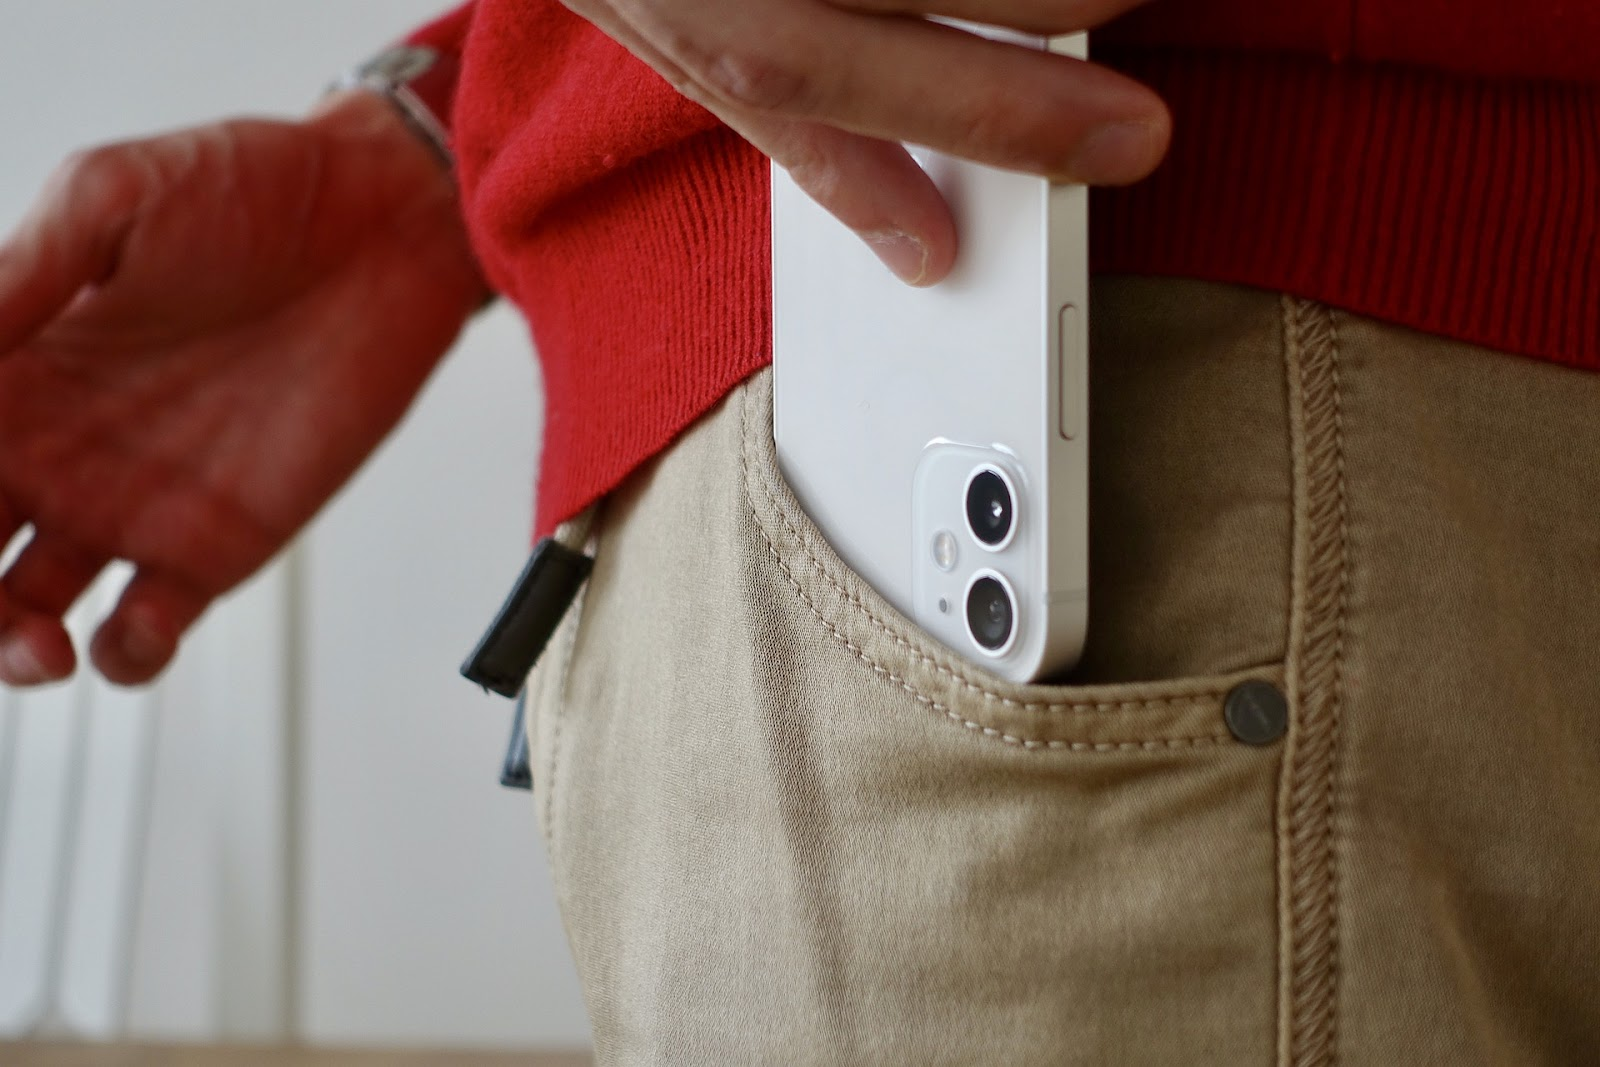 iPhone inside trousers